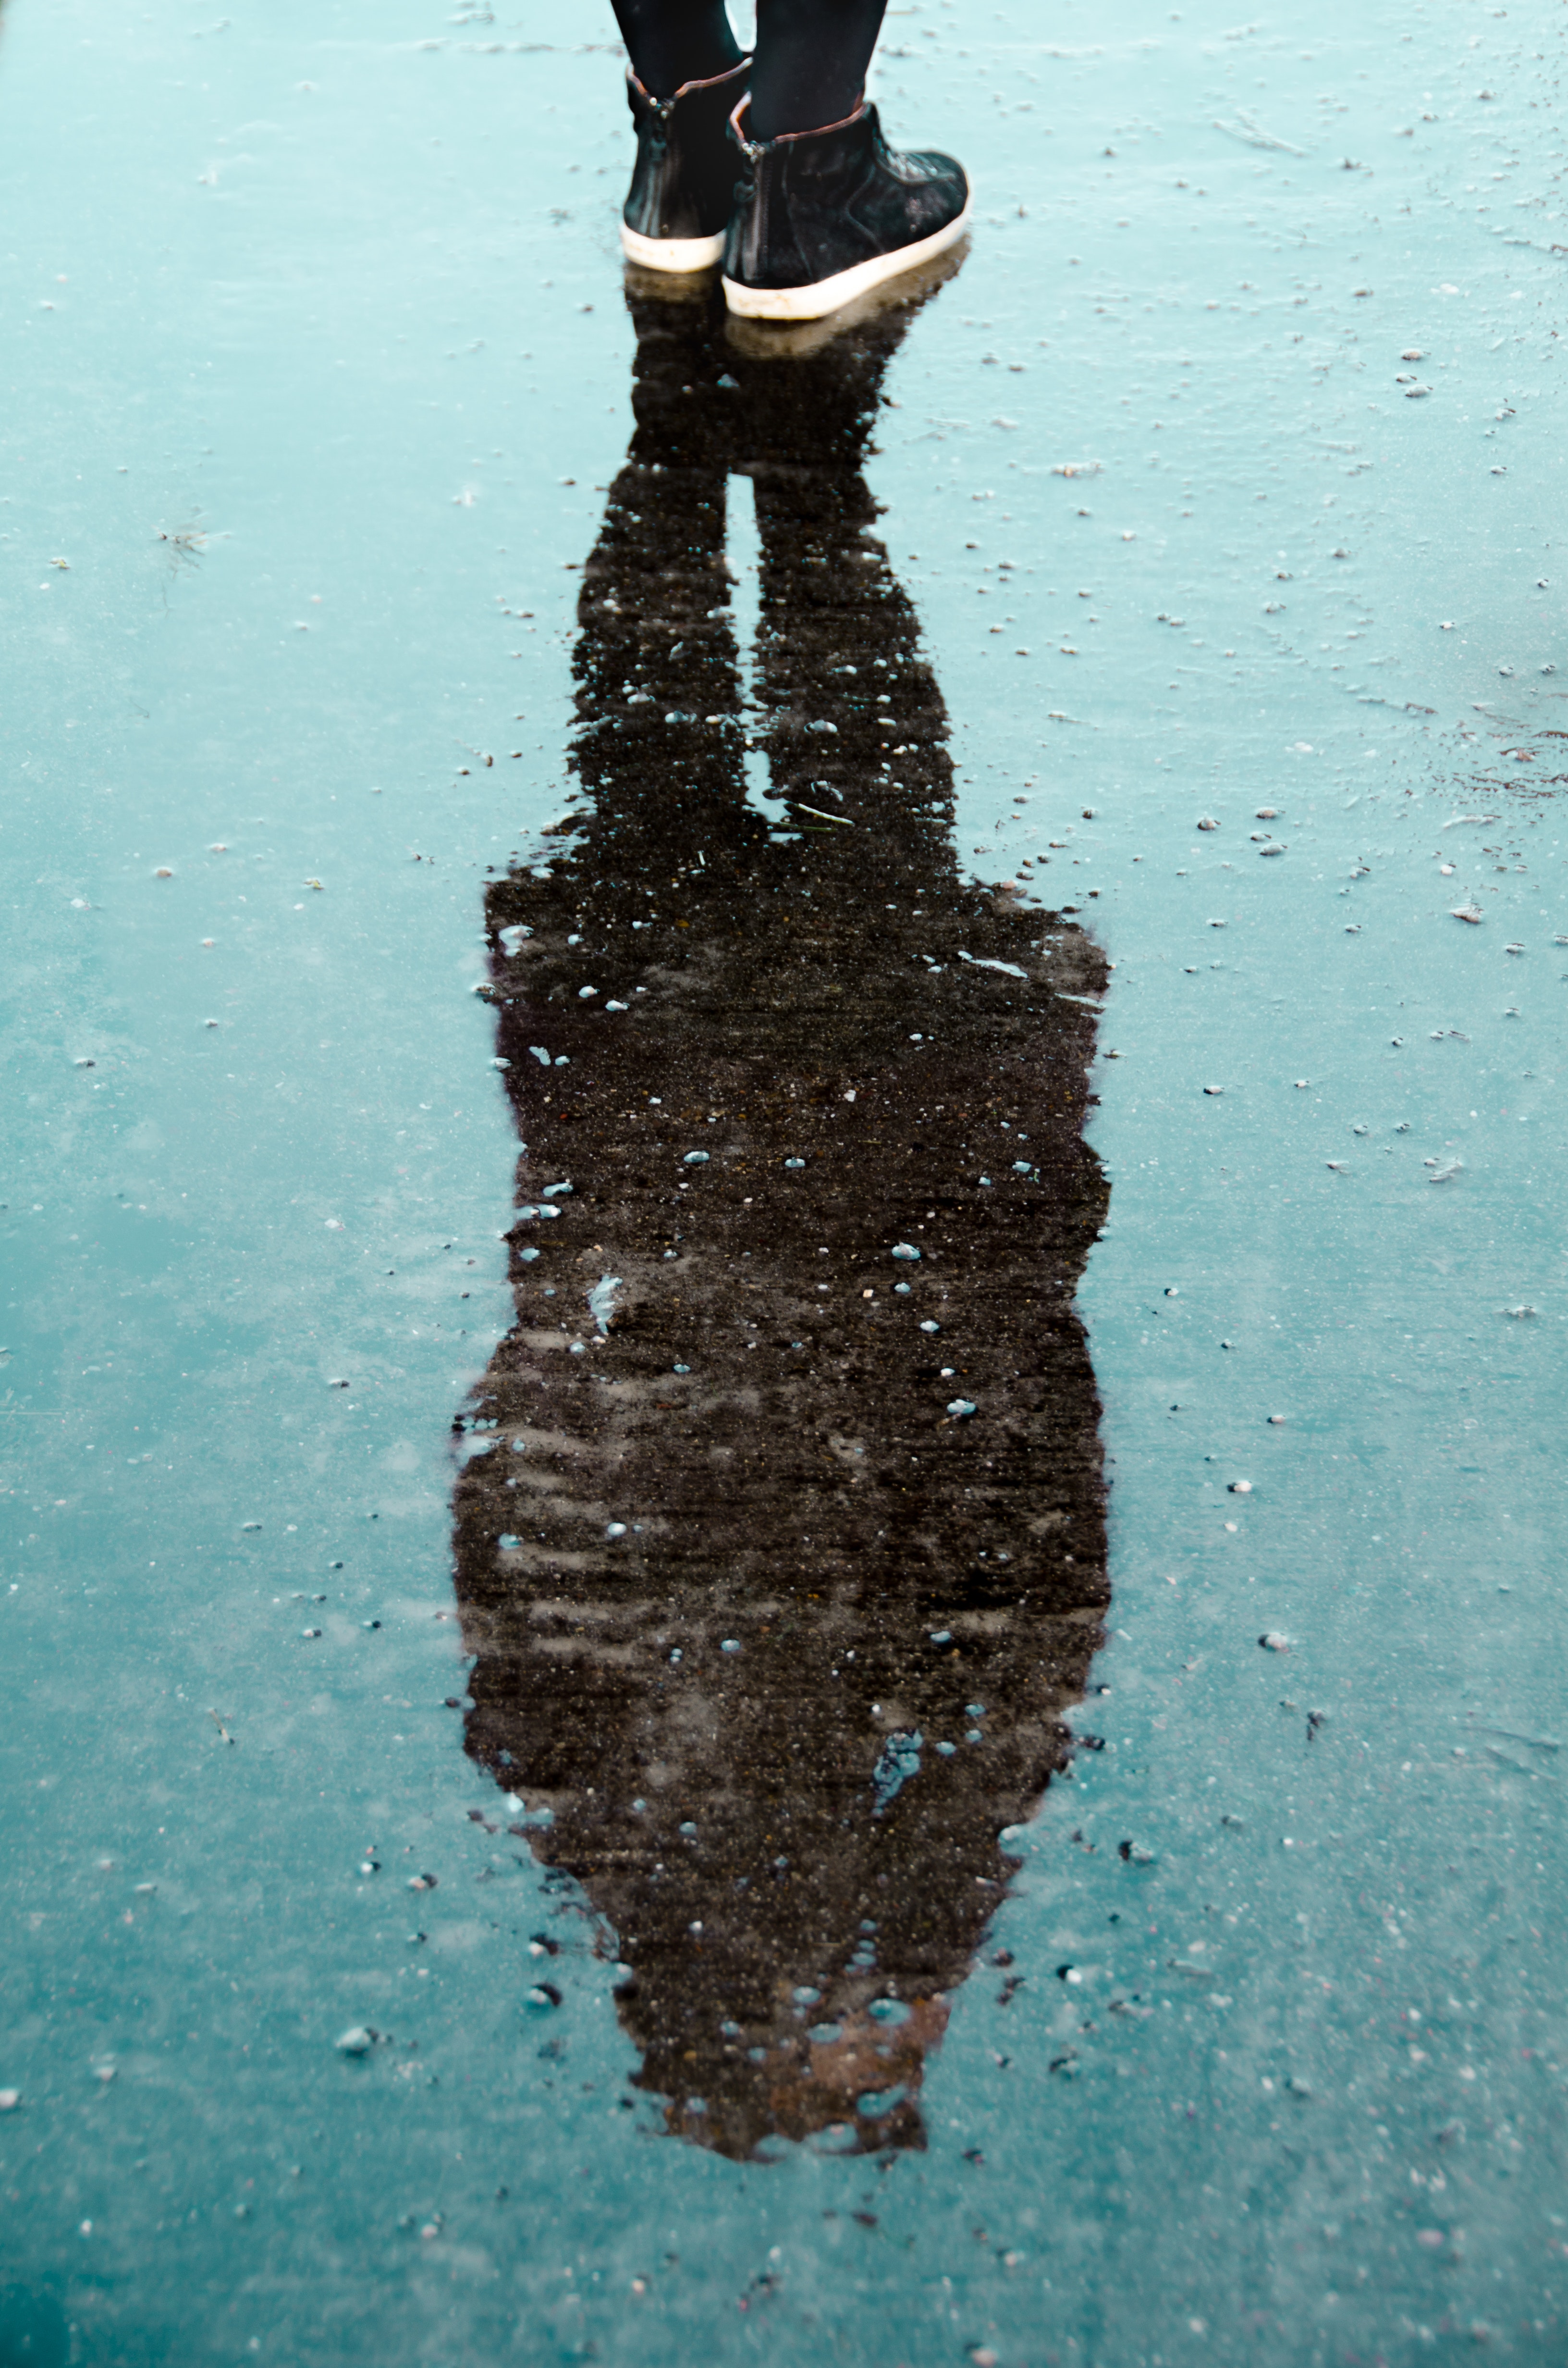 Shadow Of Person On Water During Daytime 183 Free Stock Photo